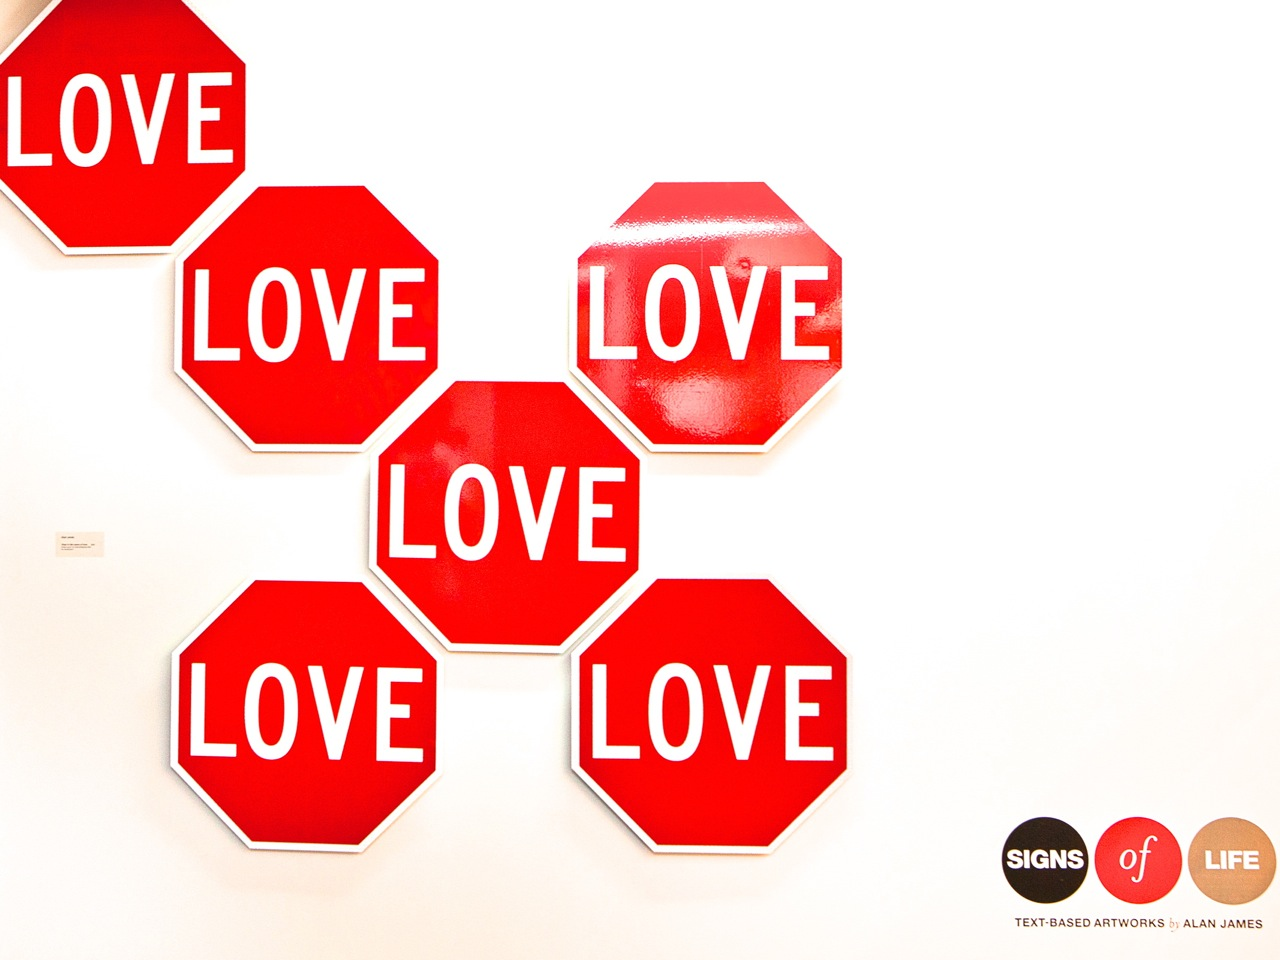 Love Sign - Redland Art Gallery 1